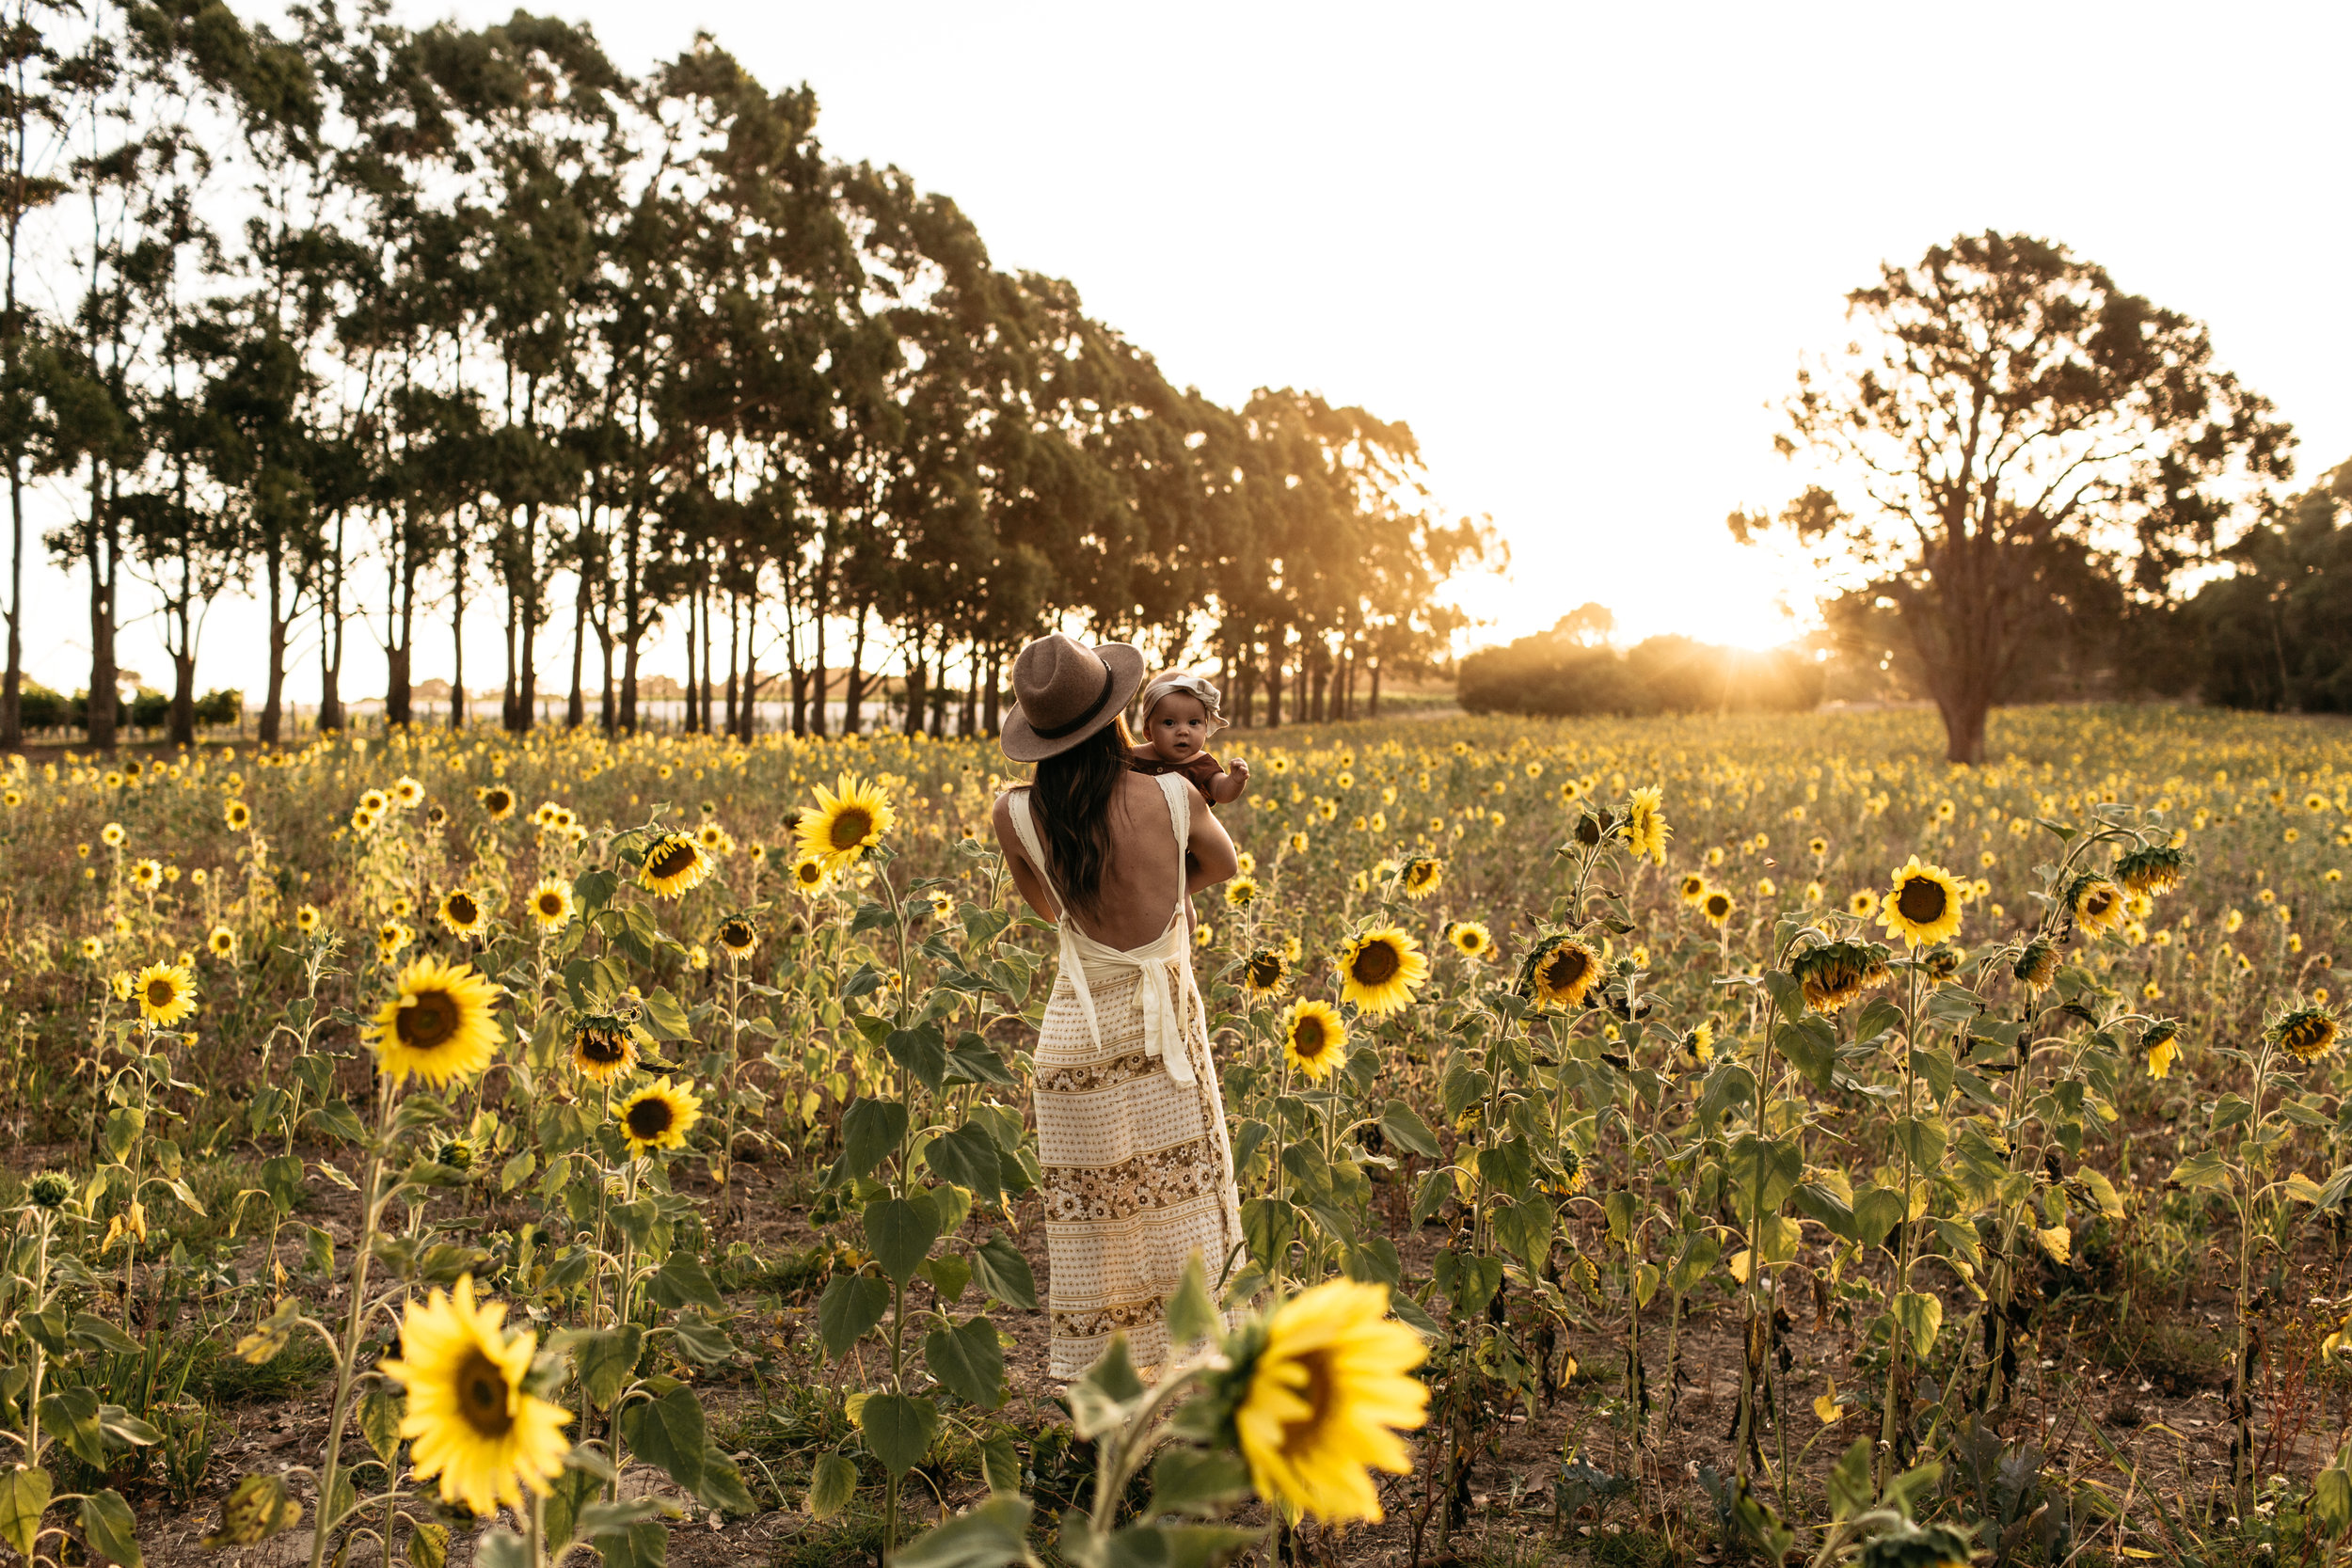 Elkie_Sunflowers2019_KHPhoto-39.JPG